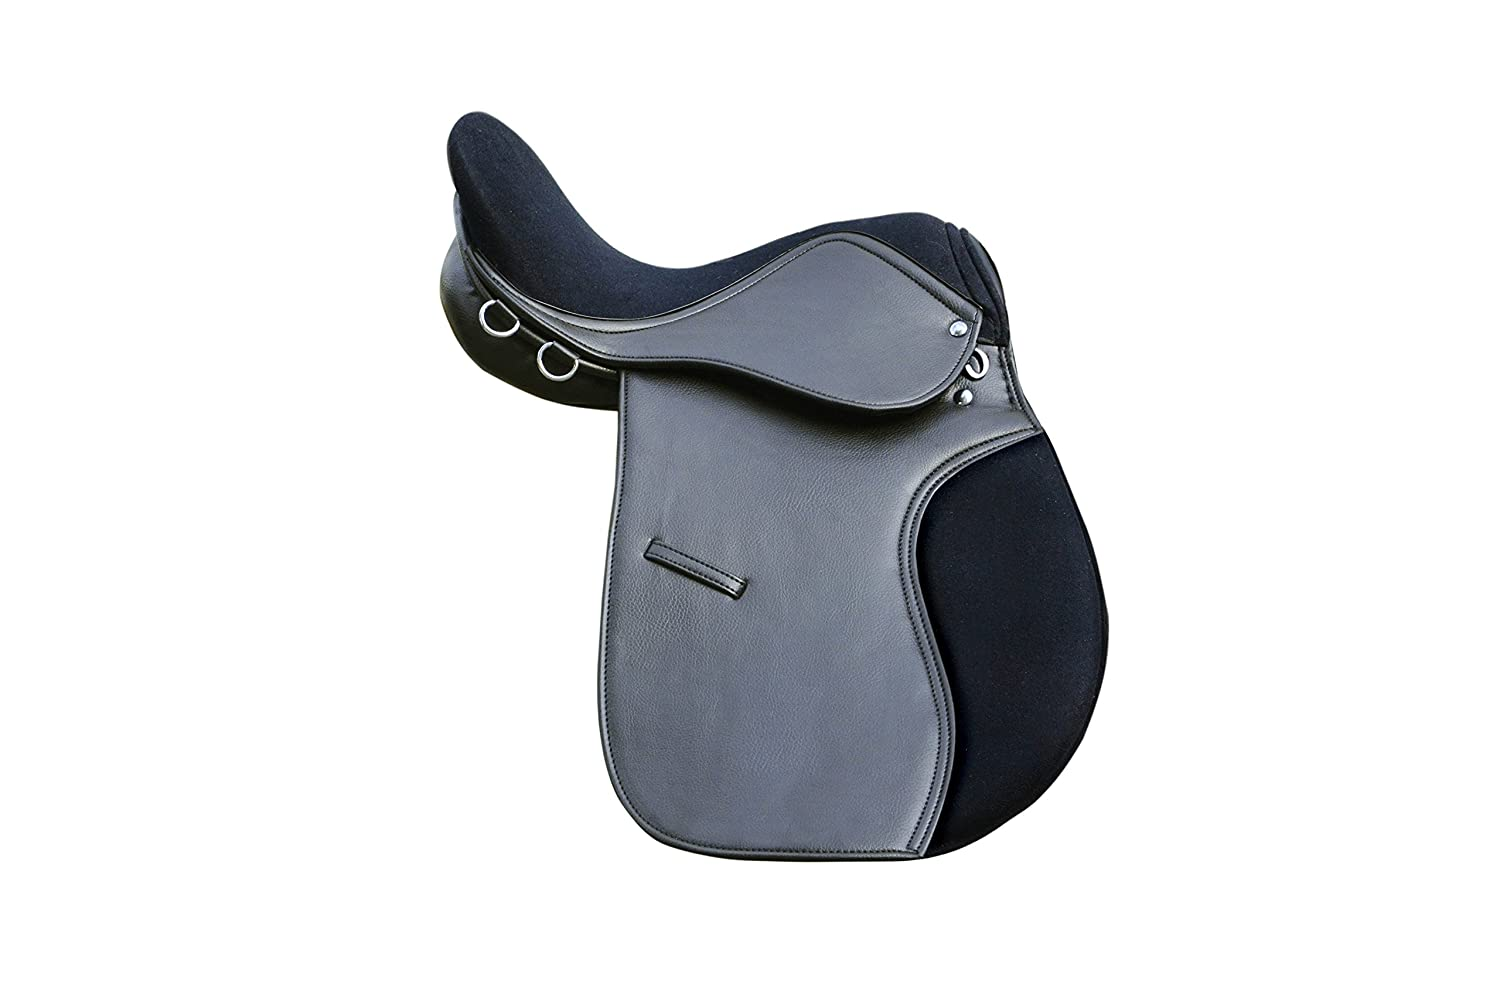 PETS2CARE Synthetic General Purpose Saddle With Suede Seat Premium Quality Wide Fit, black and brown 16, 17 & 18 (BLACK, 17)